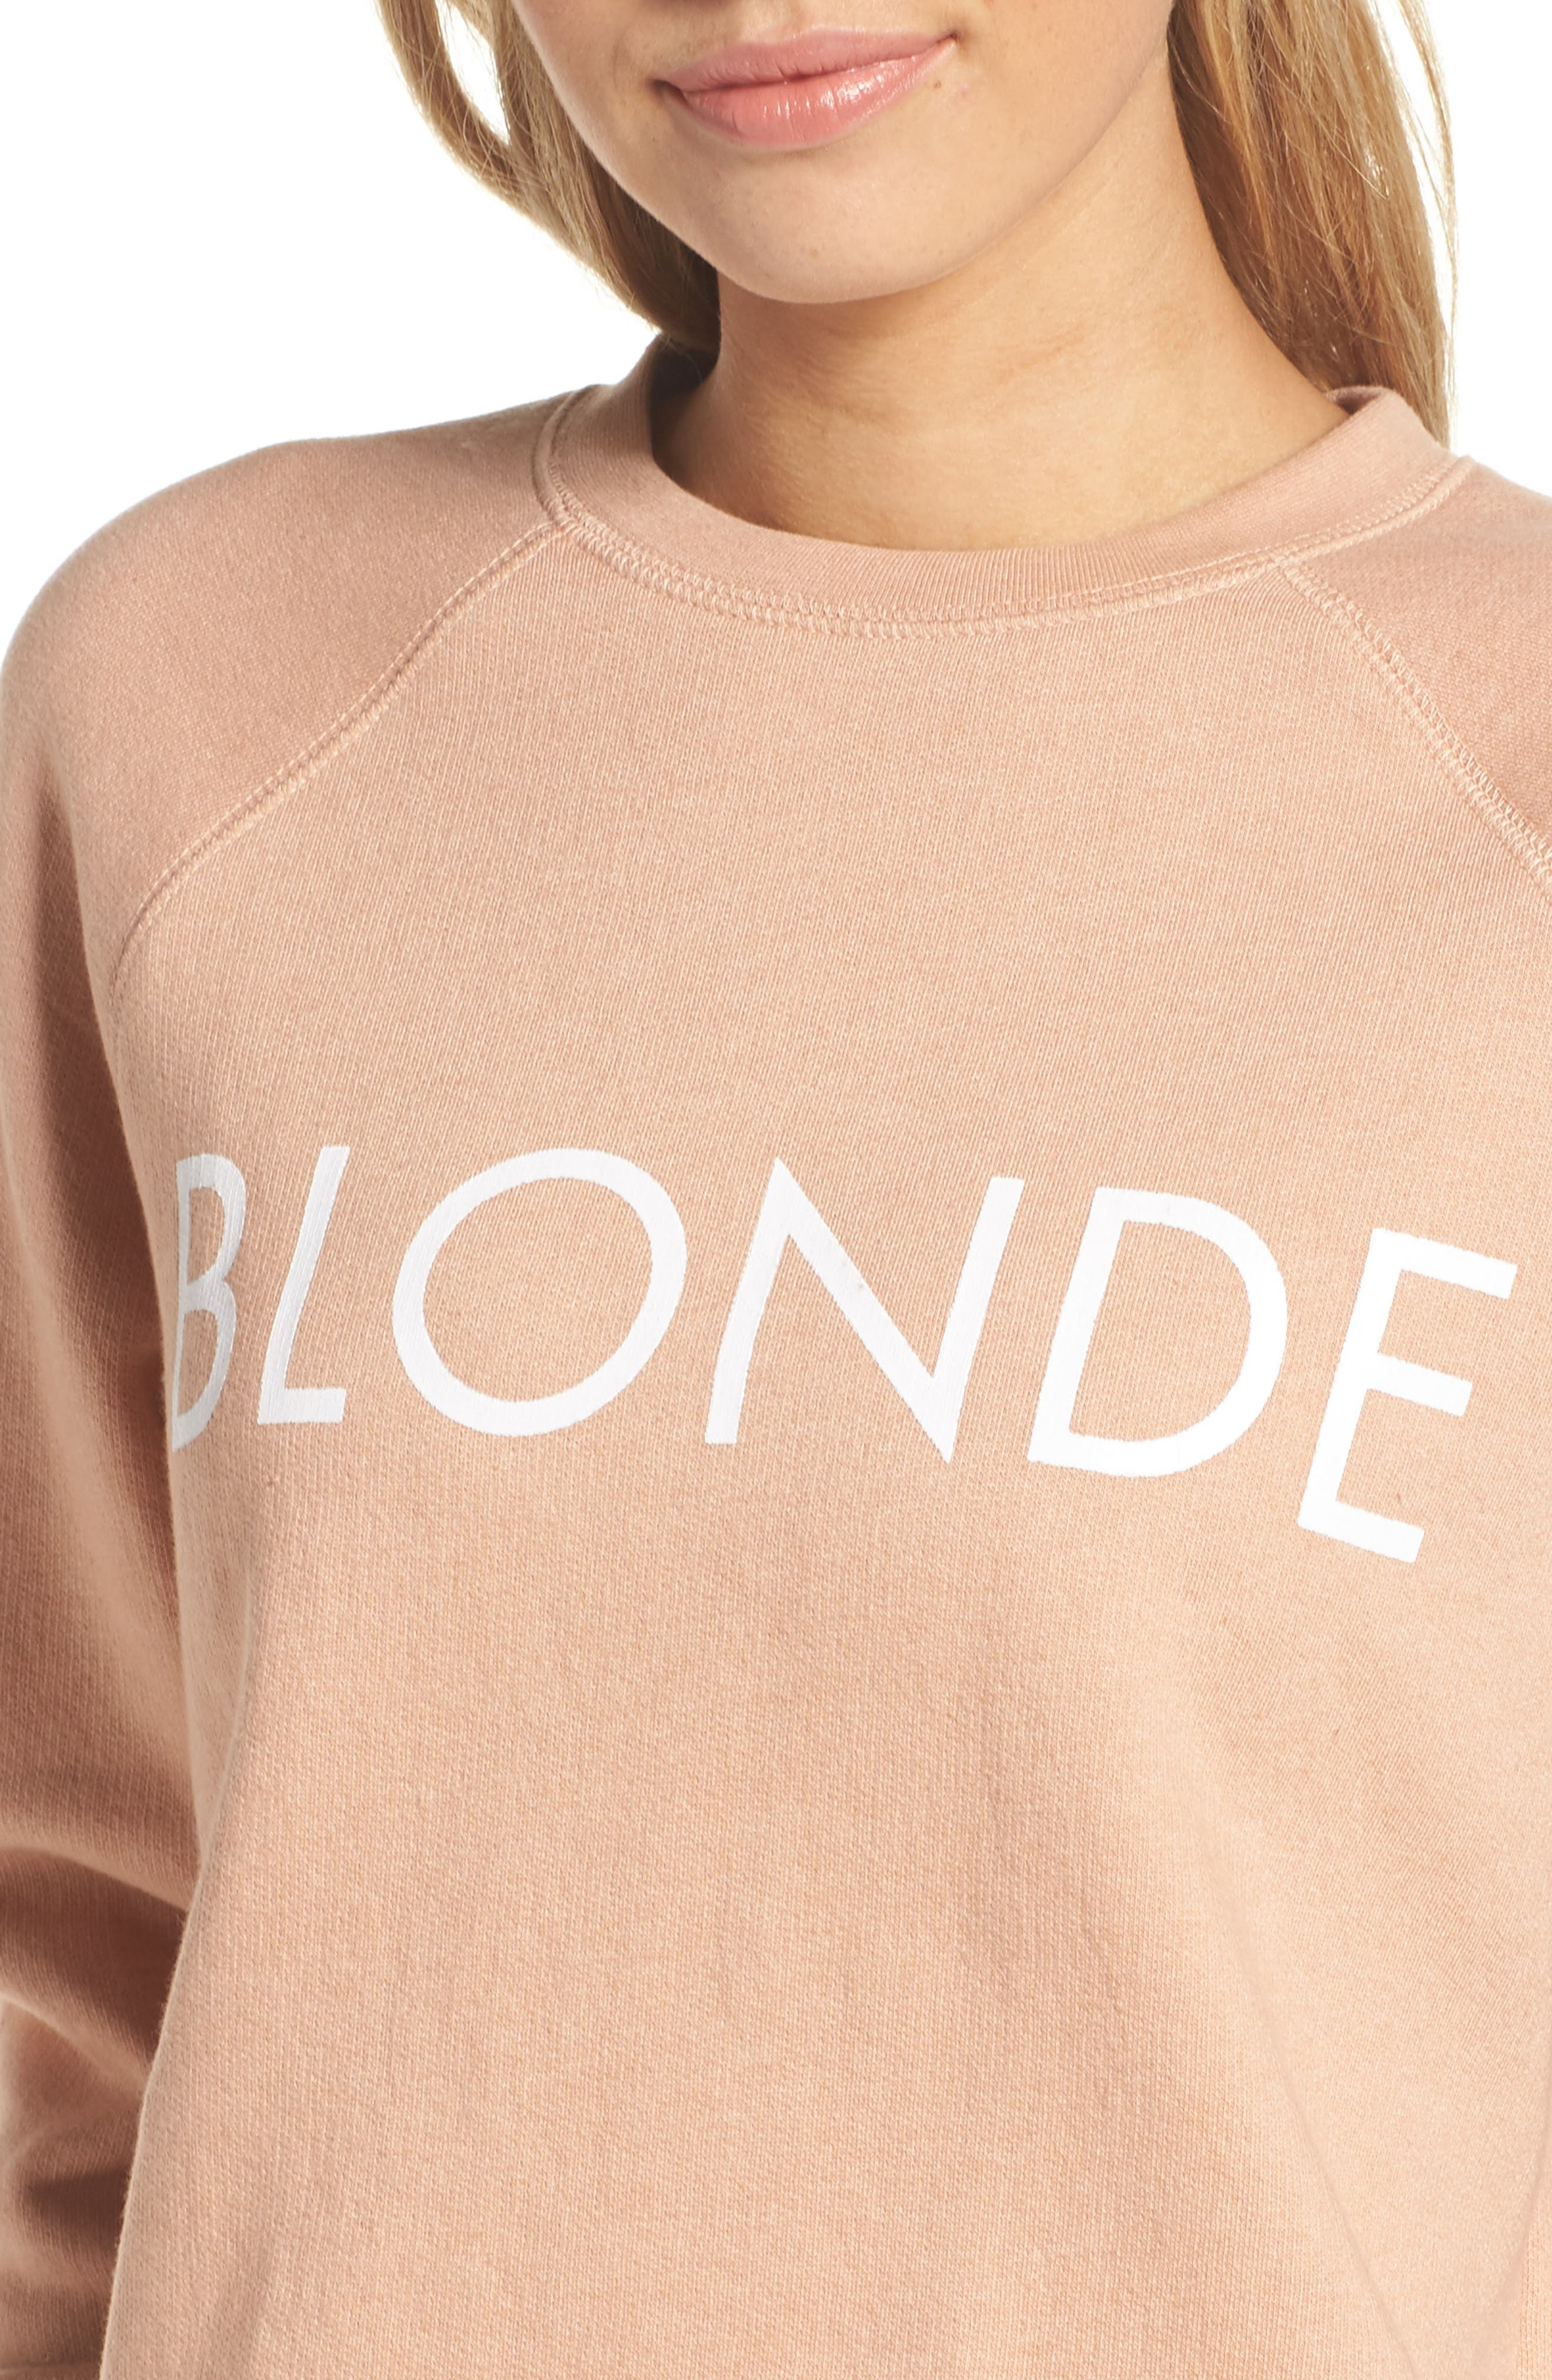 Middle Sister Blonde Sweatshirt,                             Alternate thumbnail 4, color,                             250